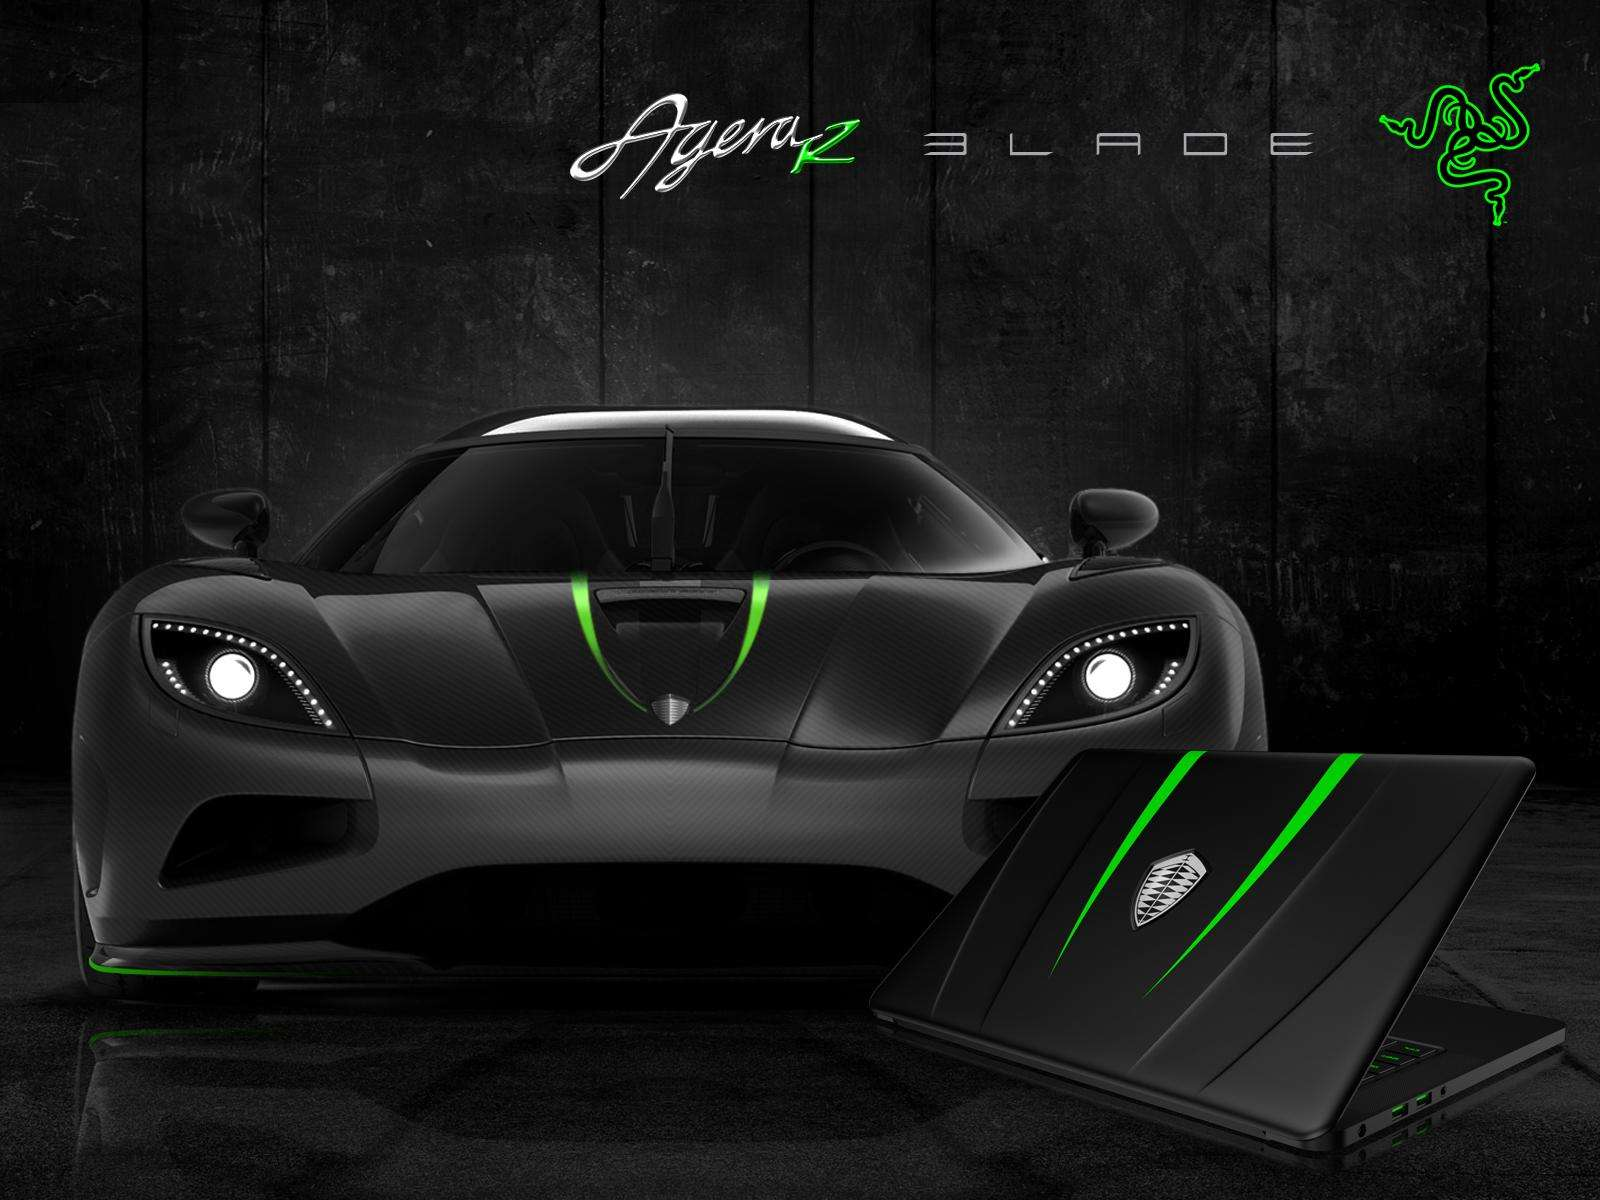 Koenigsegg Razer Blade limited edition laptop